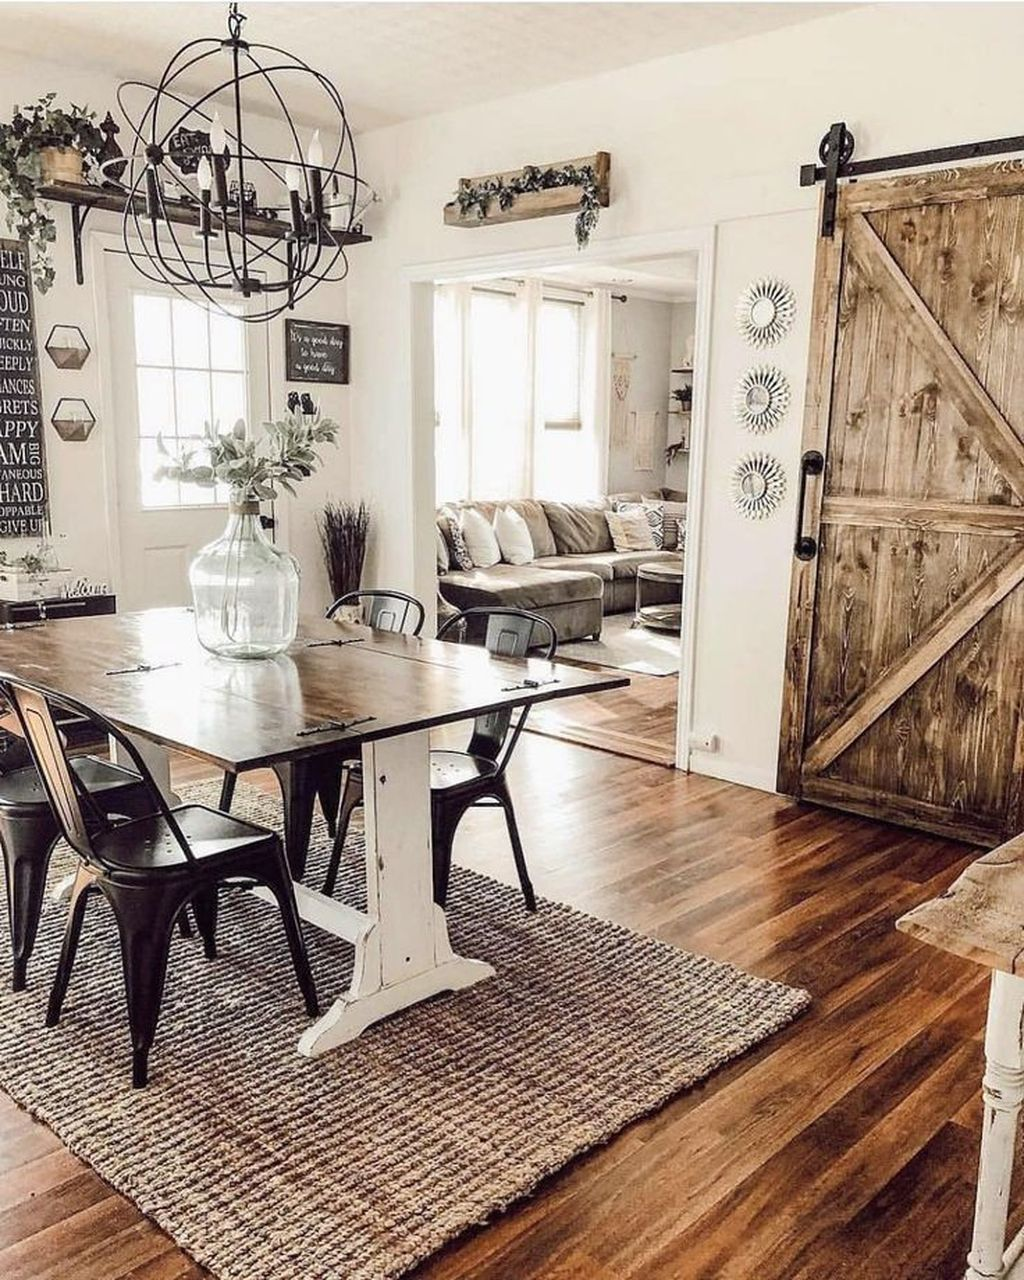 Amazing Farmhouse Dining Room Decor Ideas 27 - MAGZHOUSE